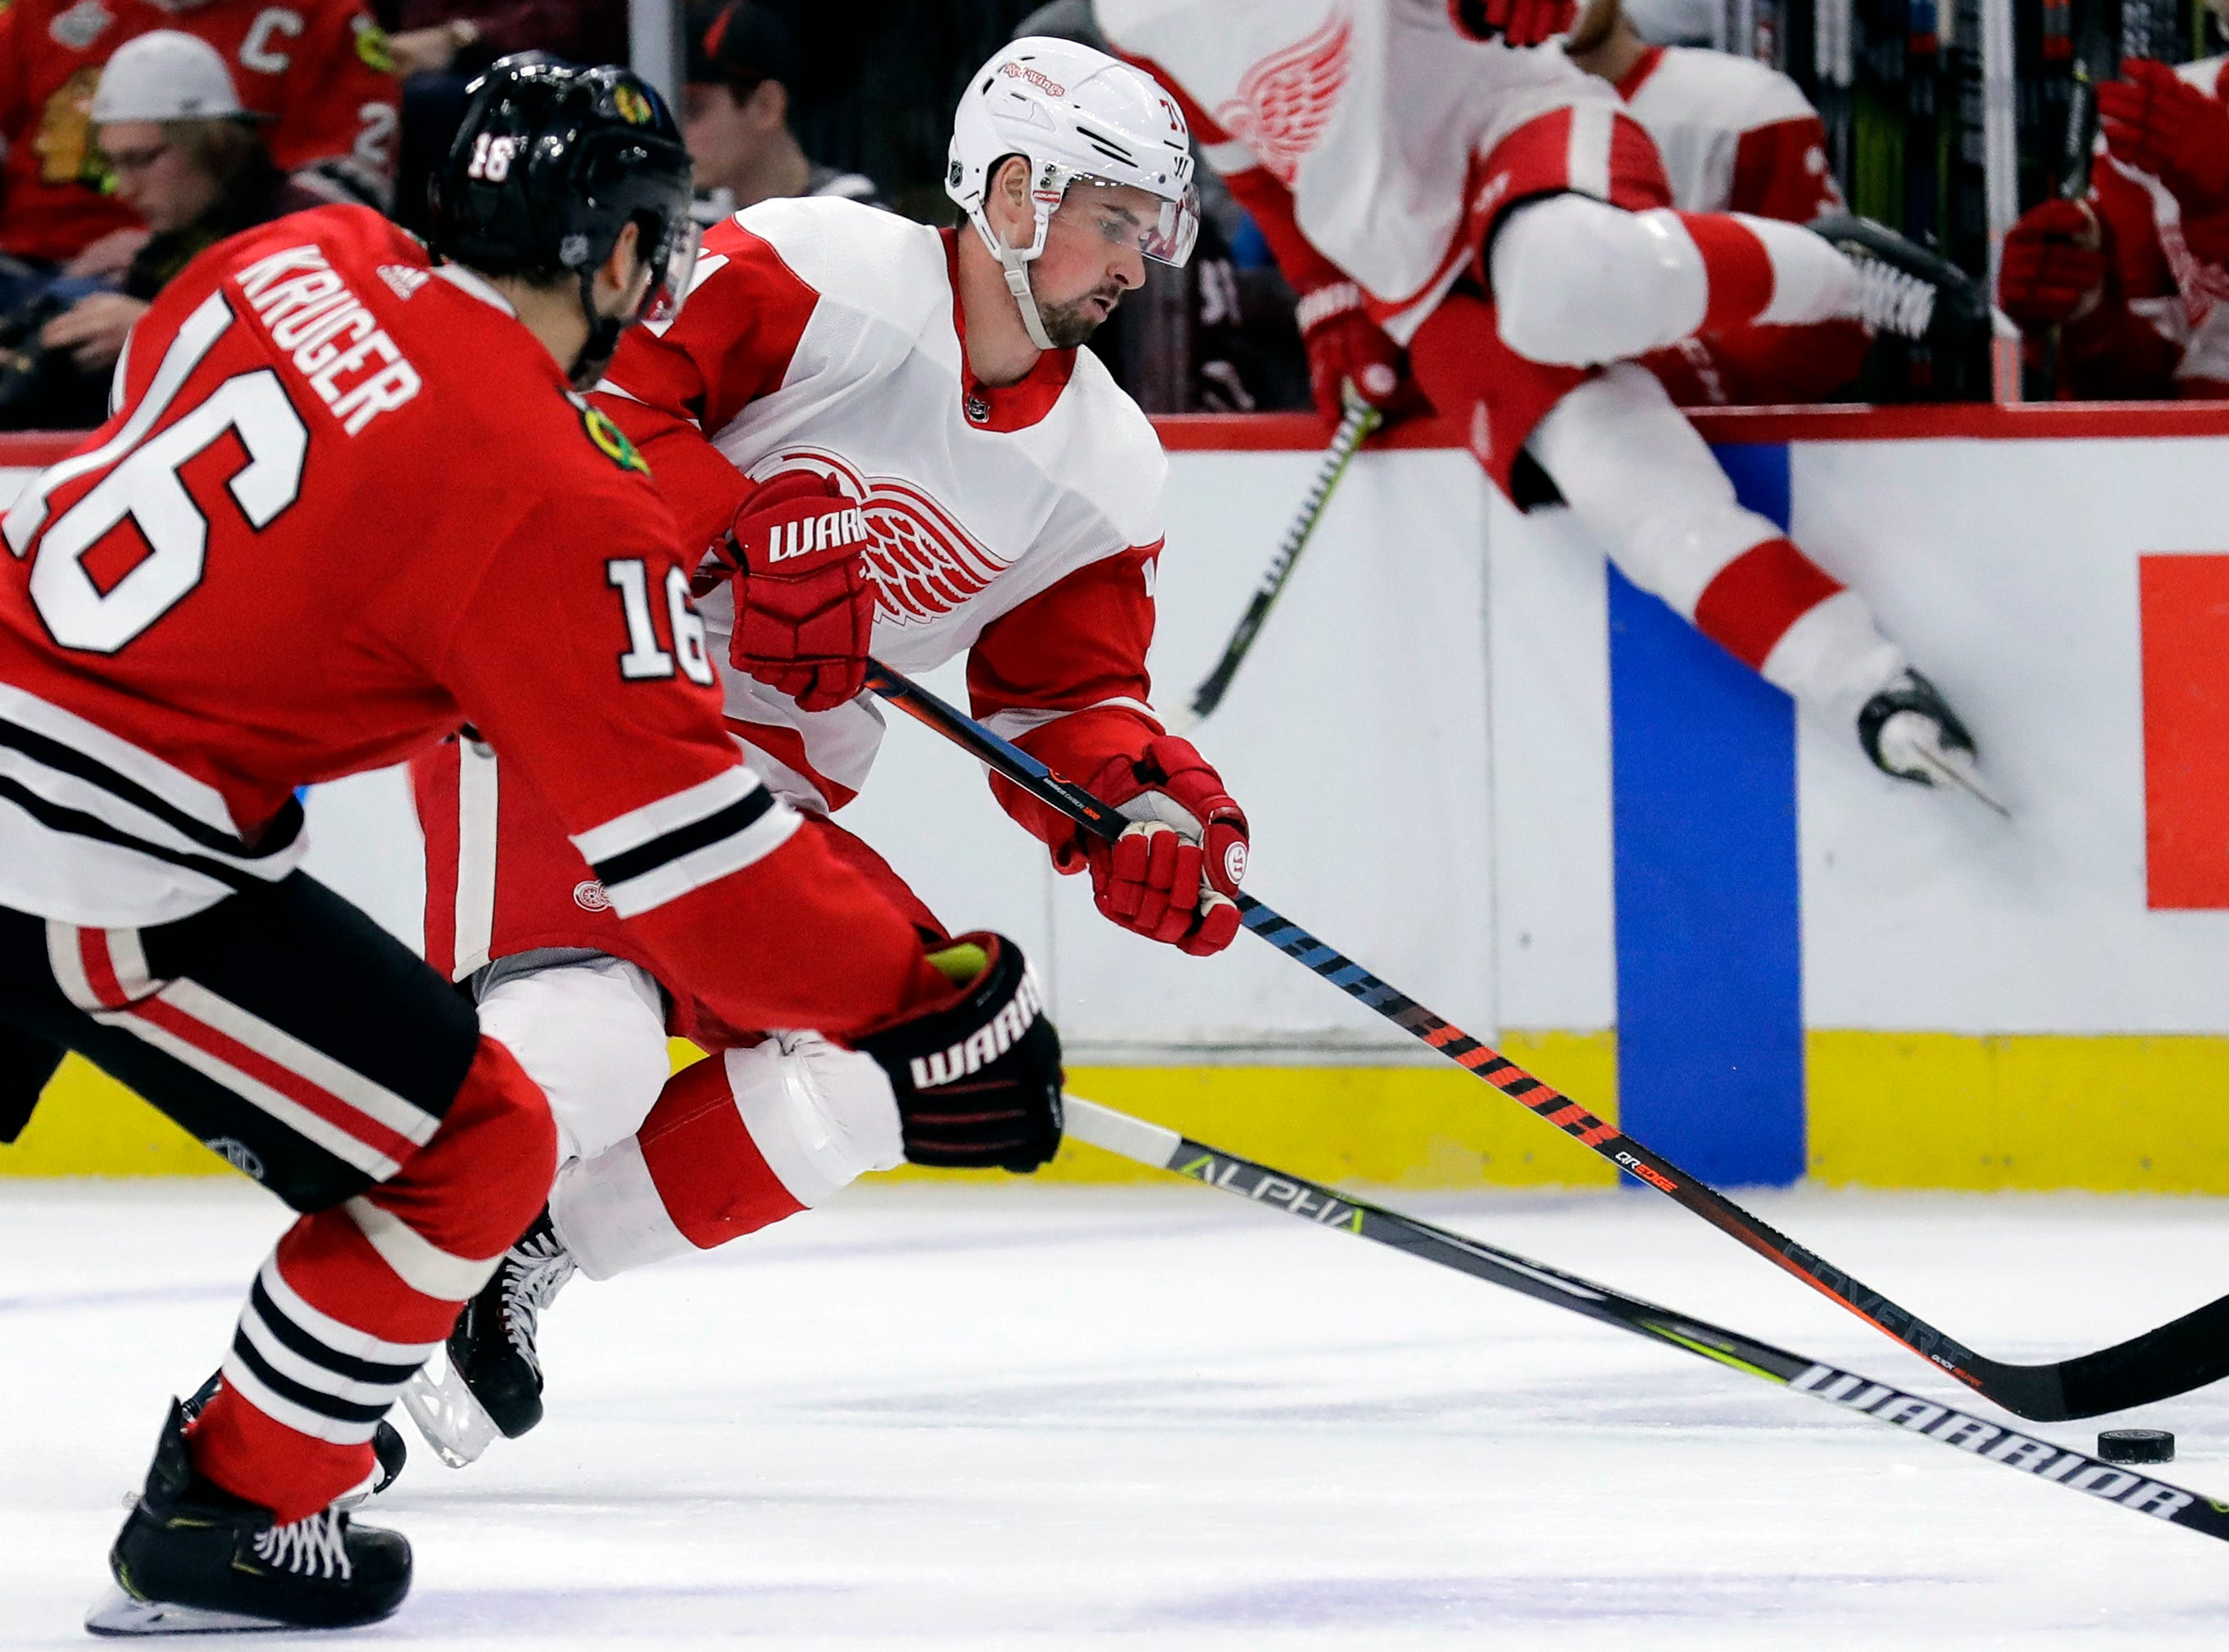 Detroit Red Wings center Dylan Larkin, front right, controls the puck against Chicago Blackhawks center Marcus Kruger, left, during the first period.